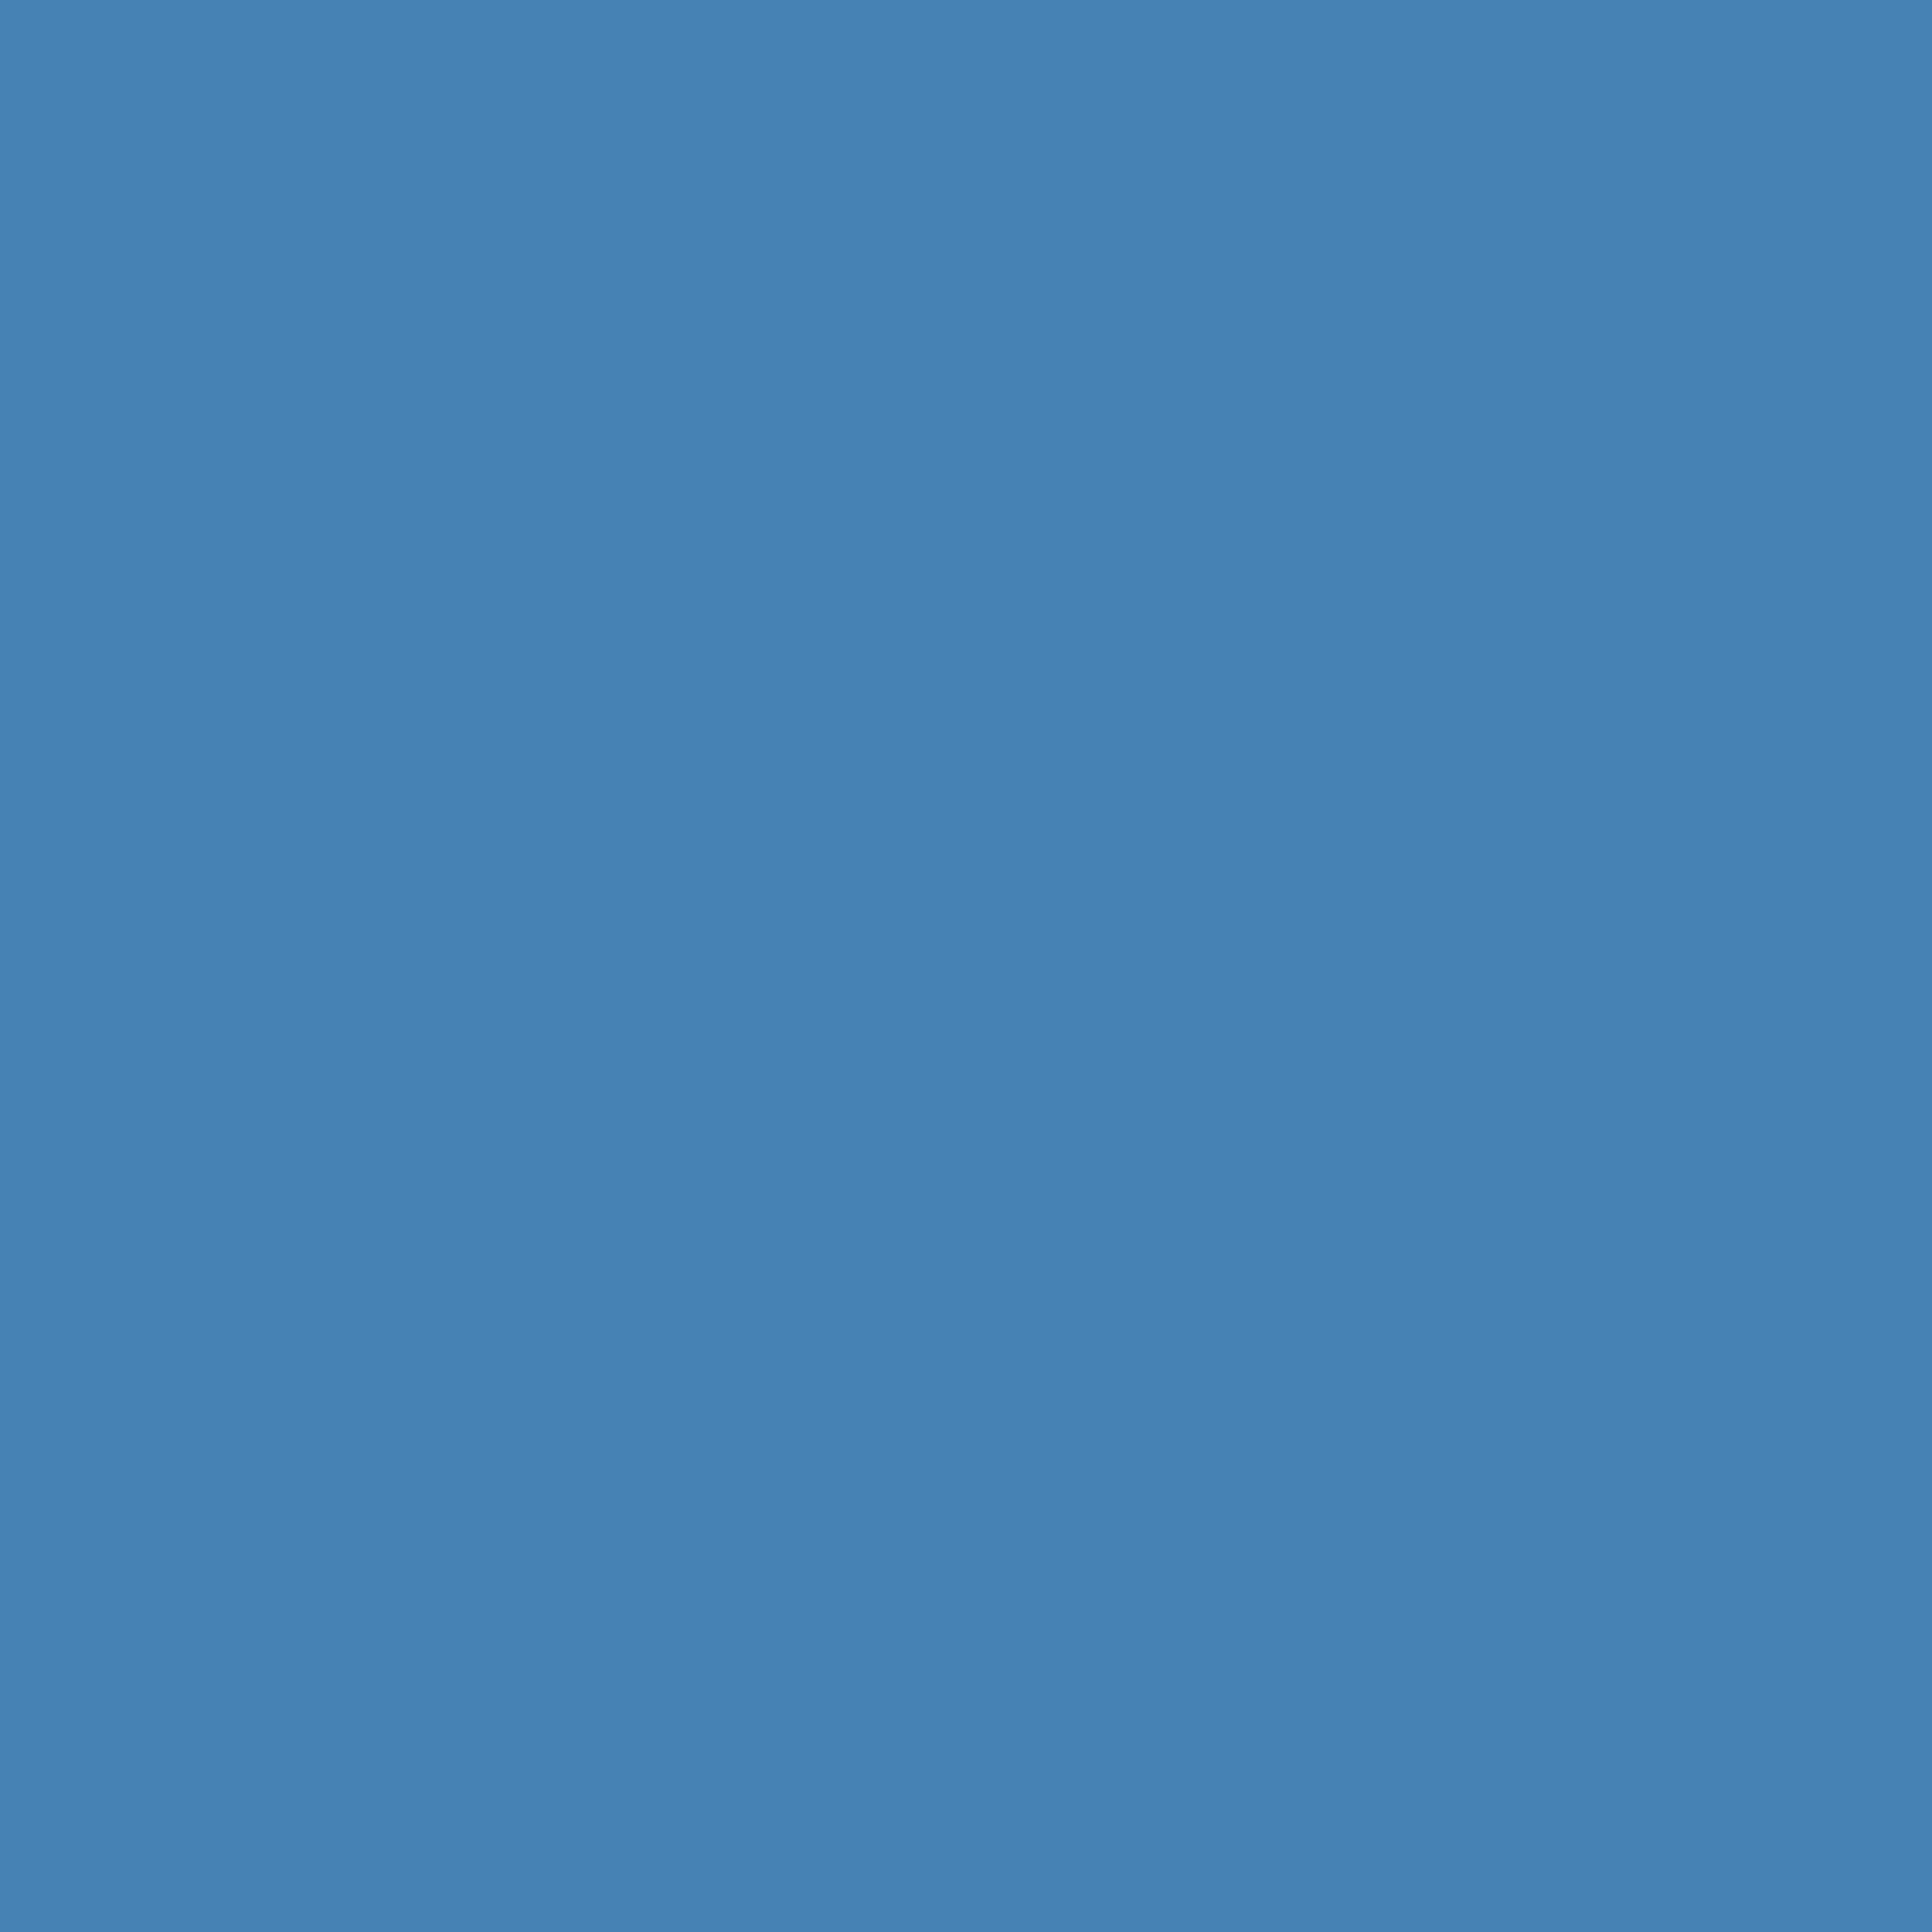 2048x2048 Steel Blue Solid Color Background